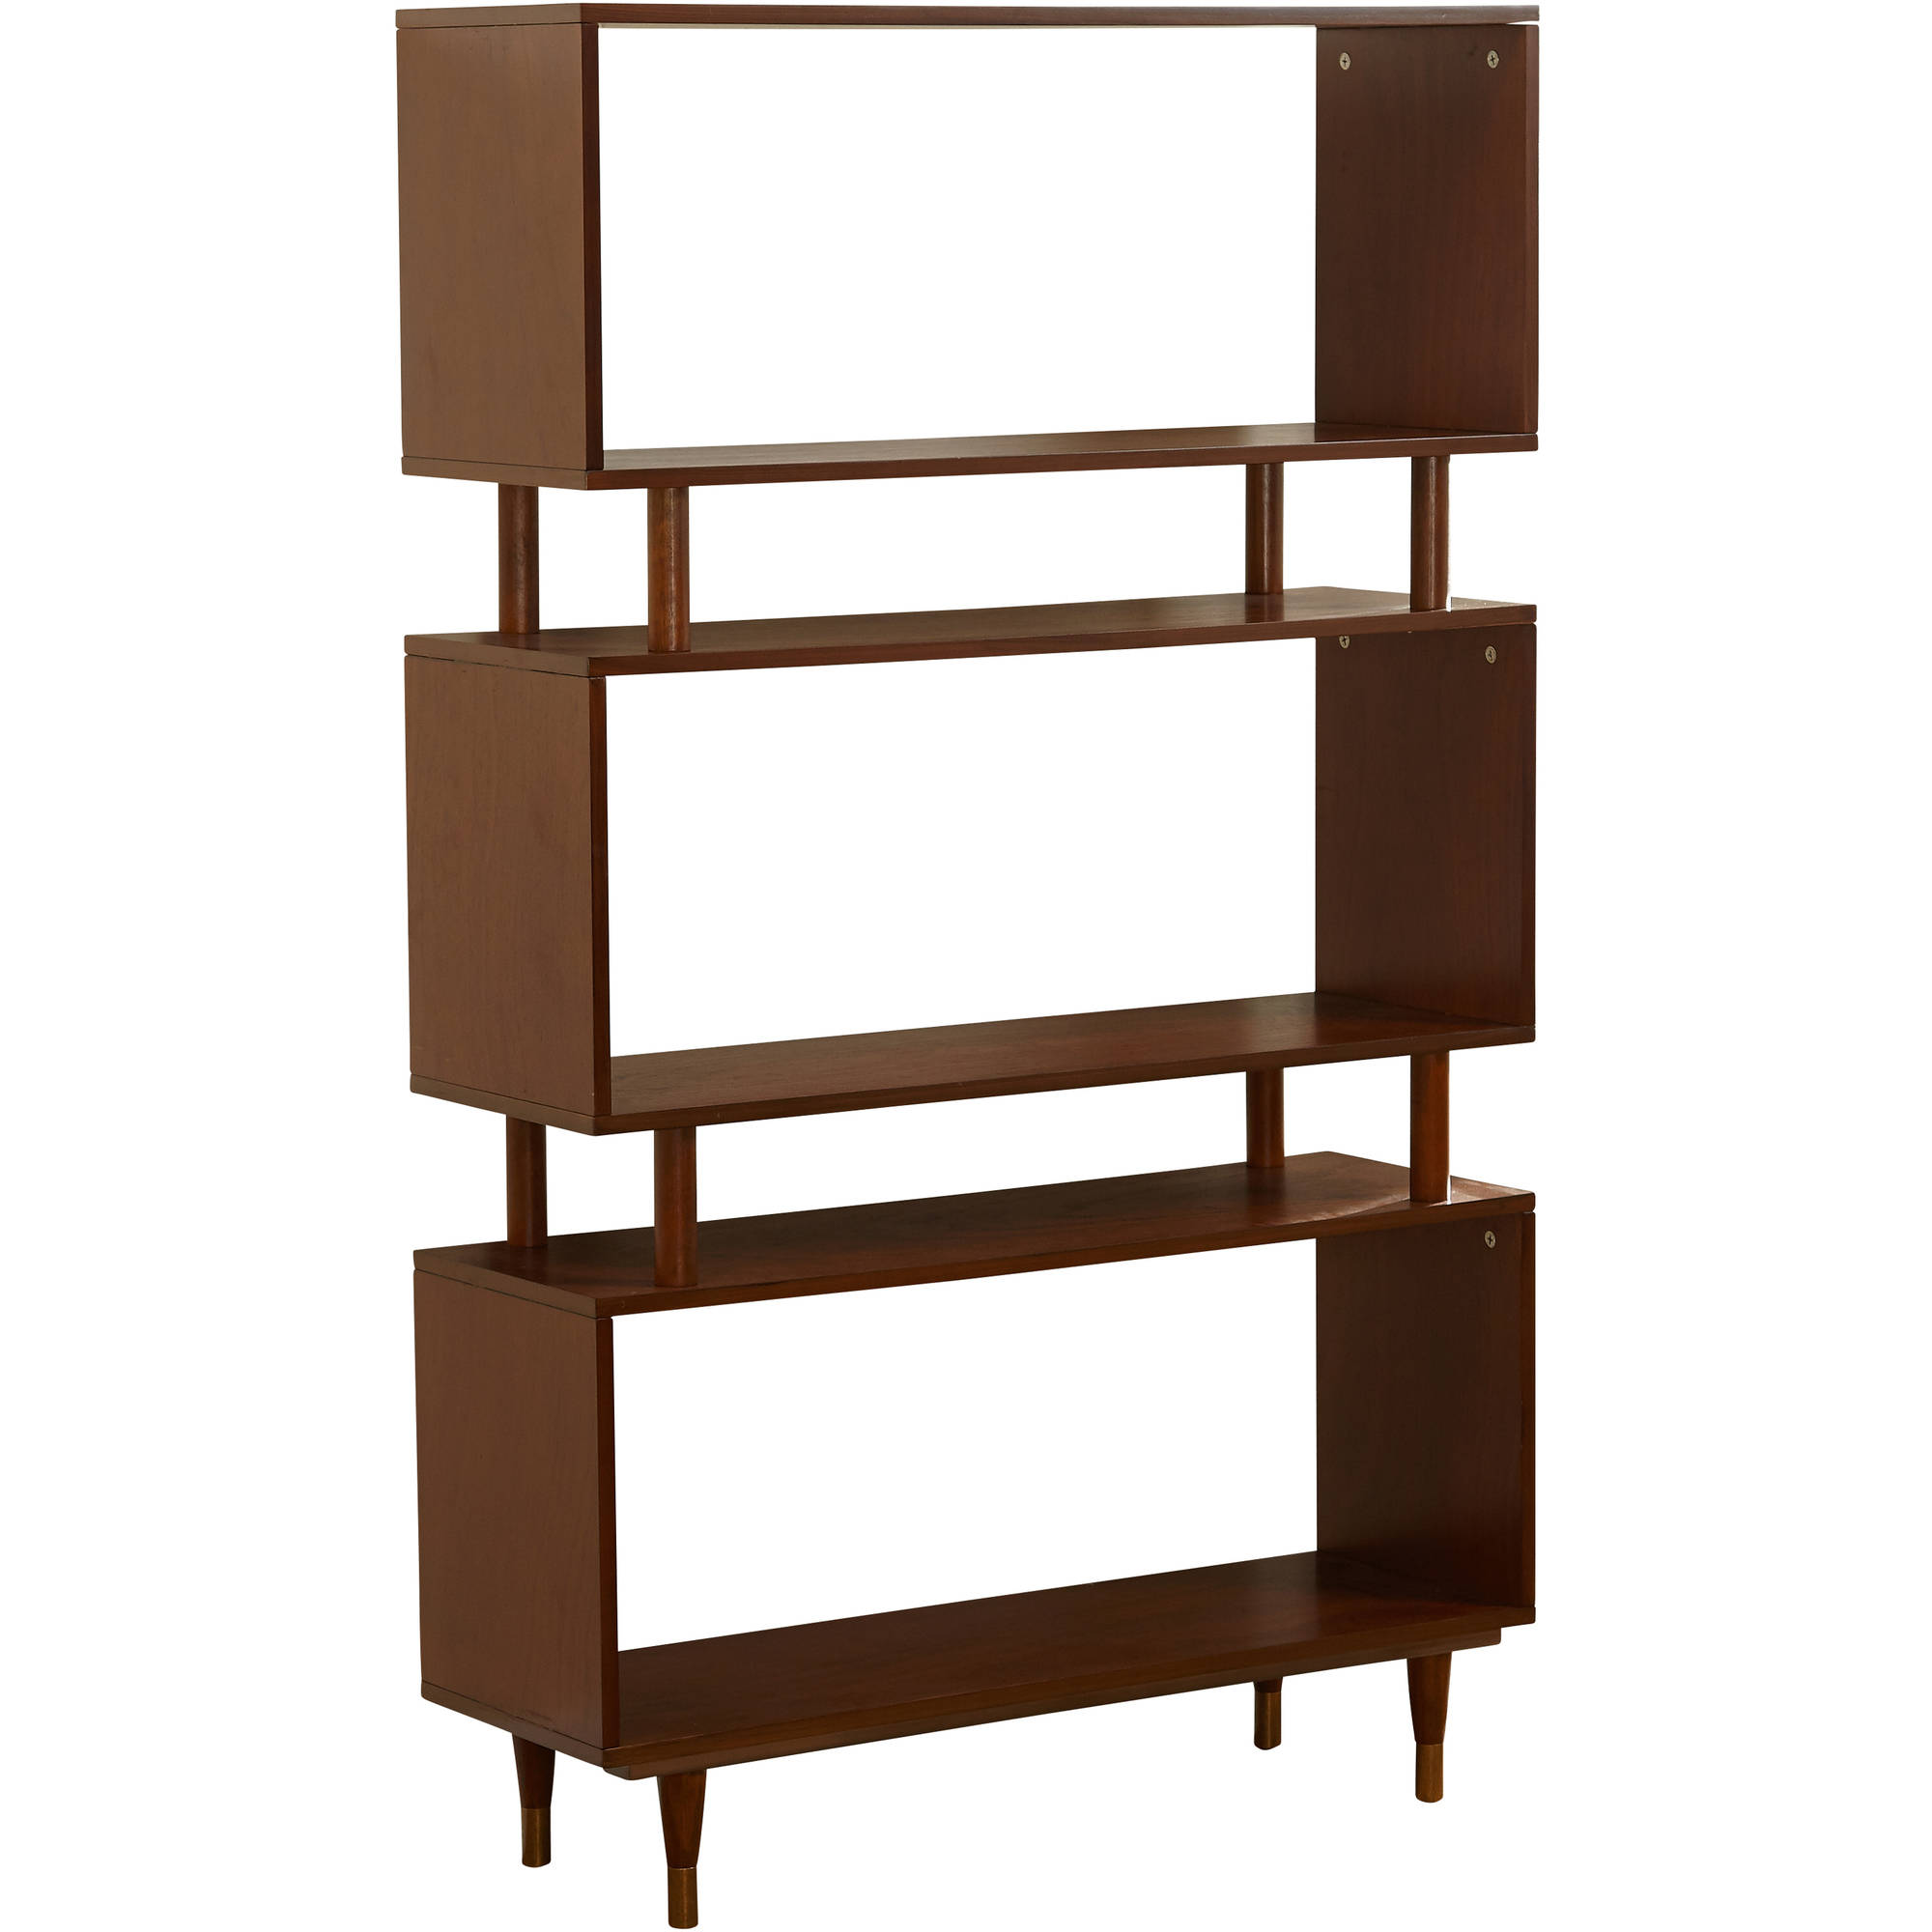 mid century bookshelf home furniture decor accent storage organizer new metal accents for safavieh console table small entryway with drawer unfinished wood white end tall coffee